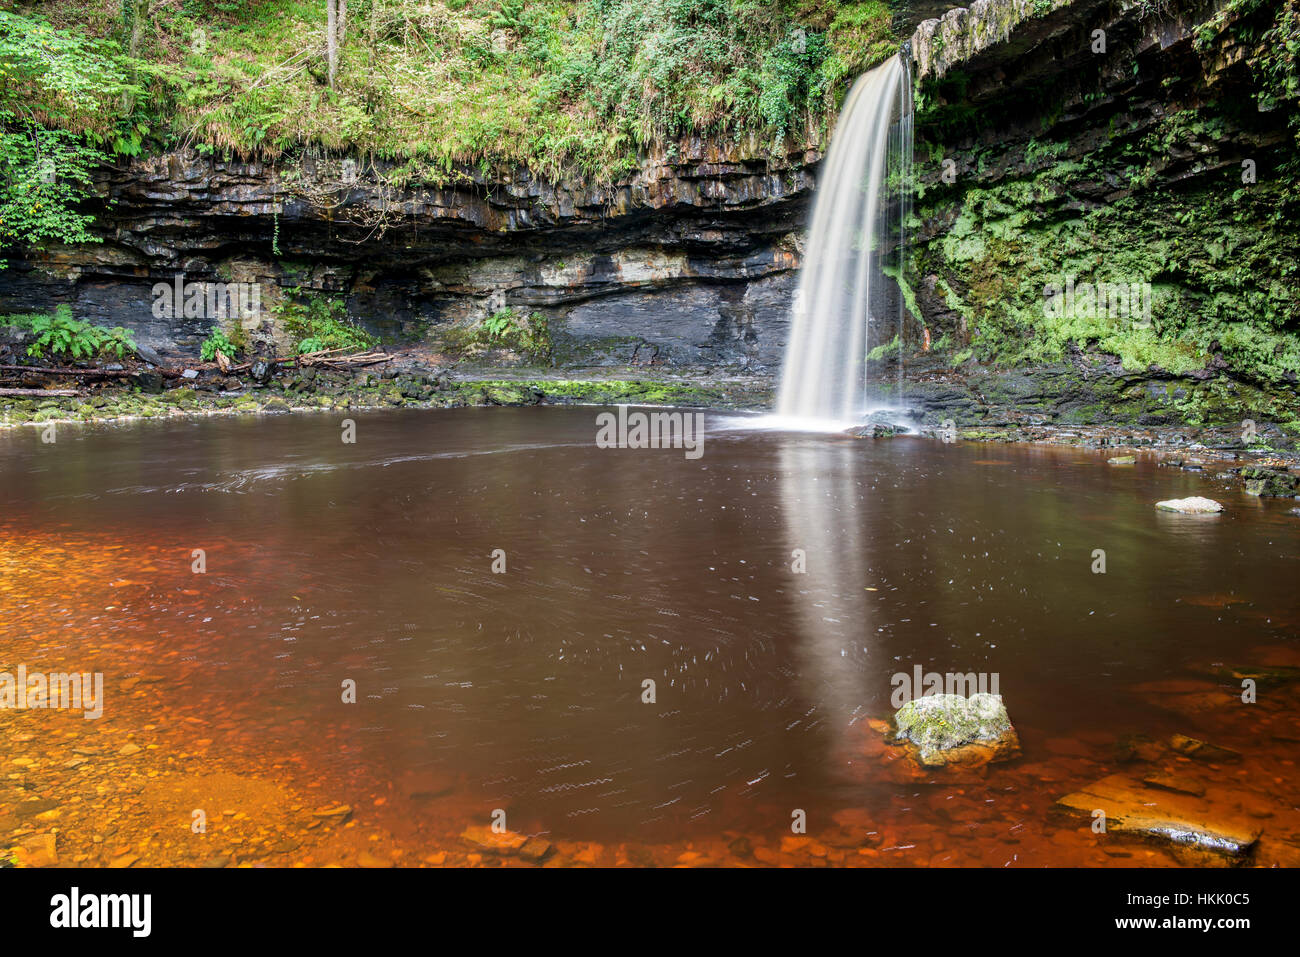 Waterfall On A River In The Neath Valley Of South Wales